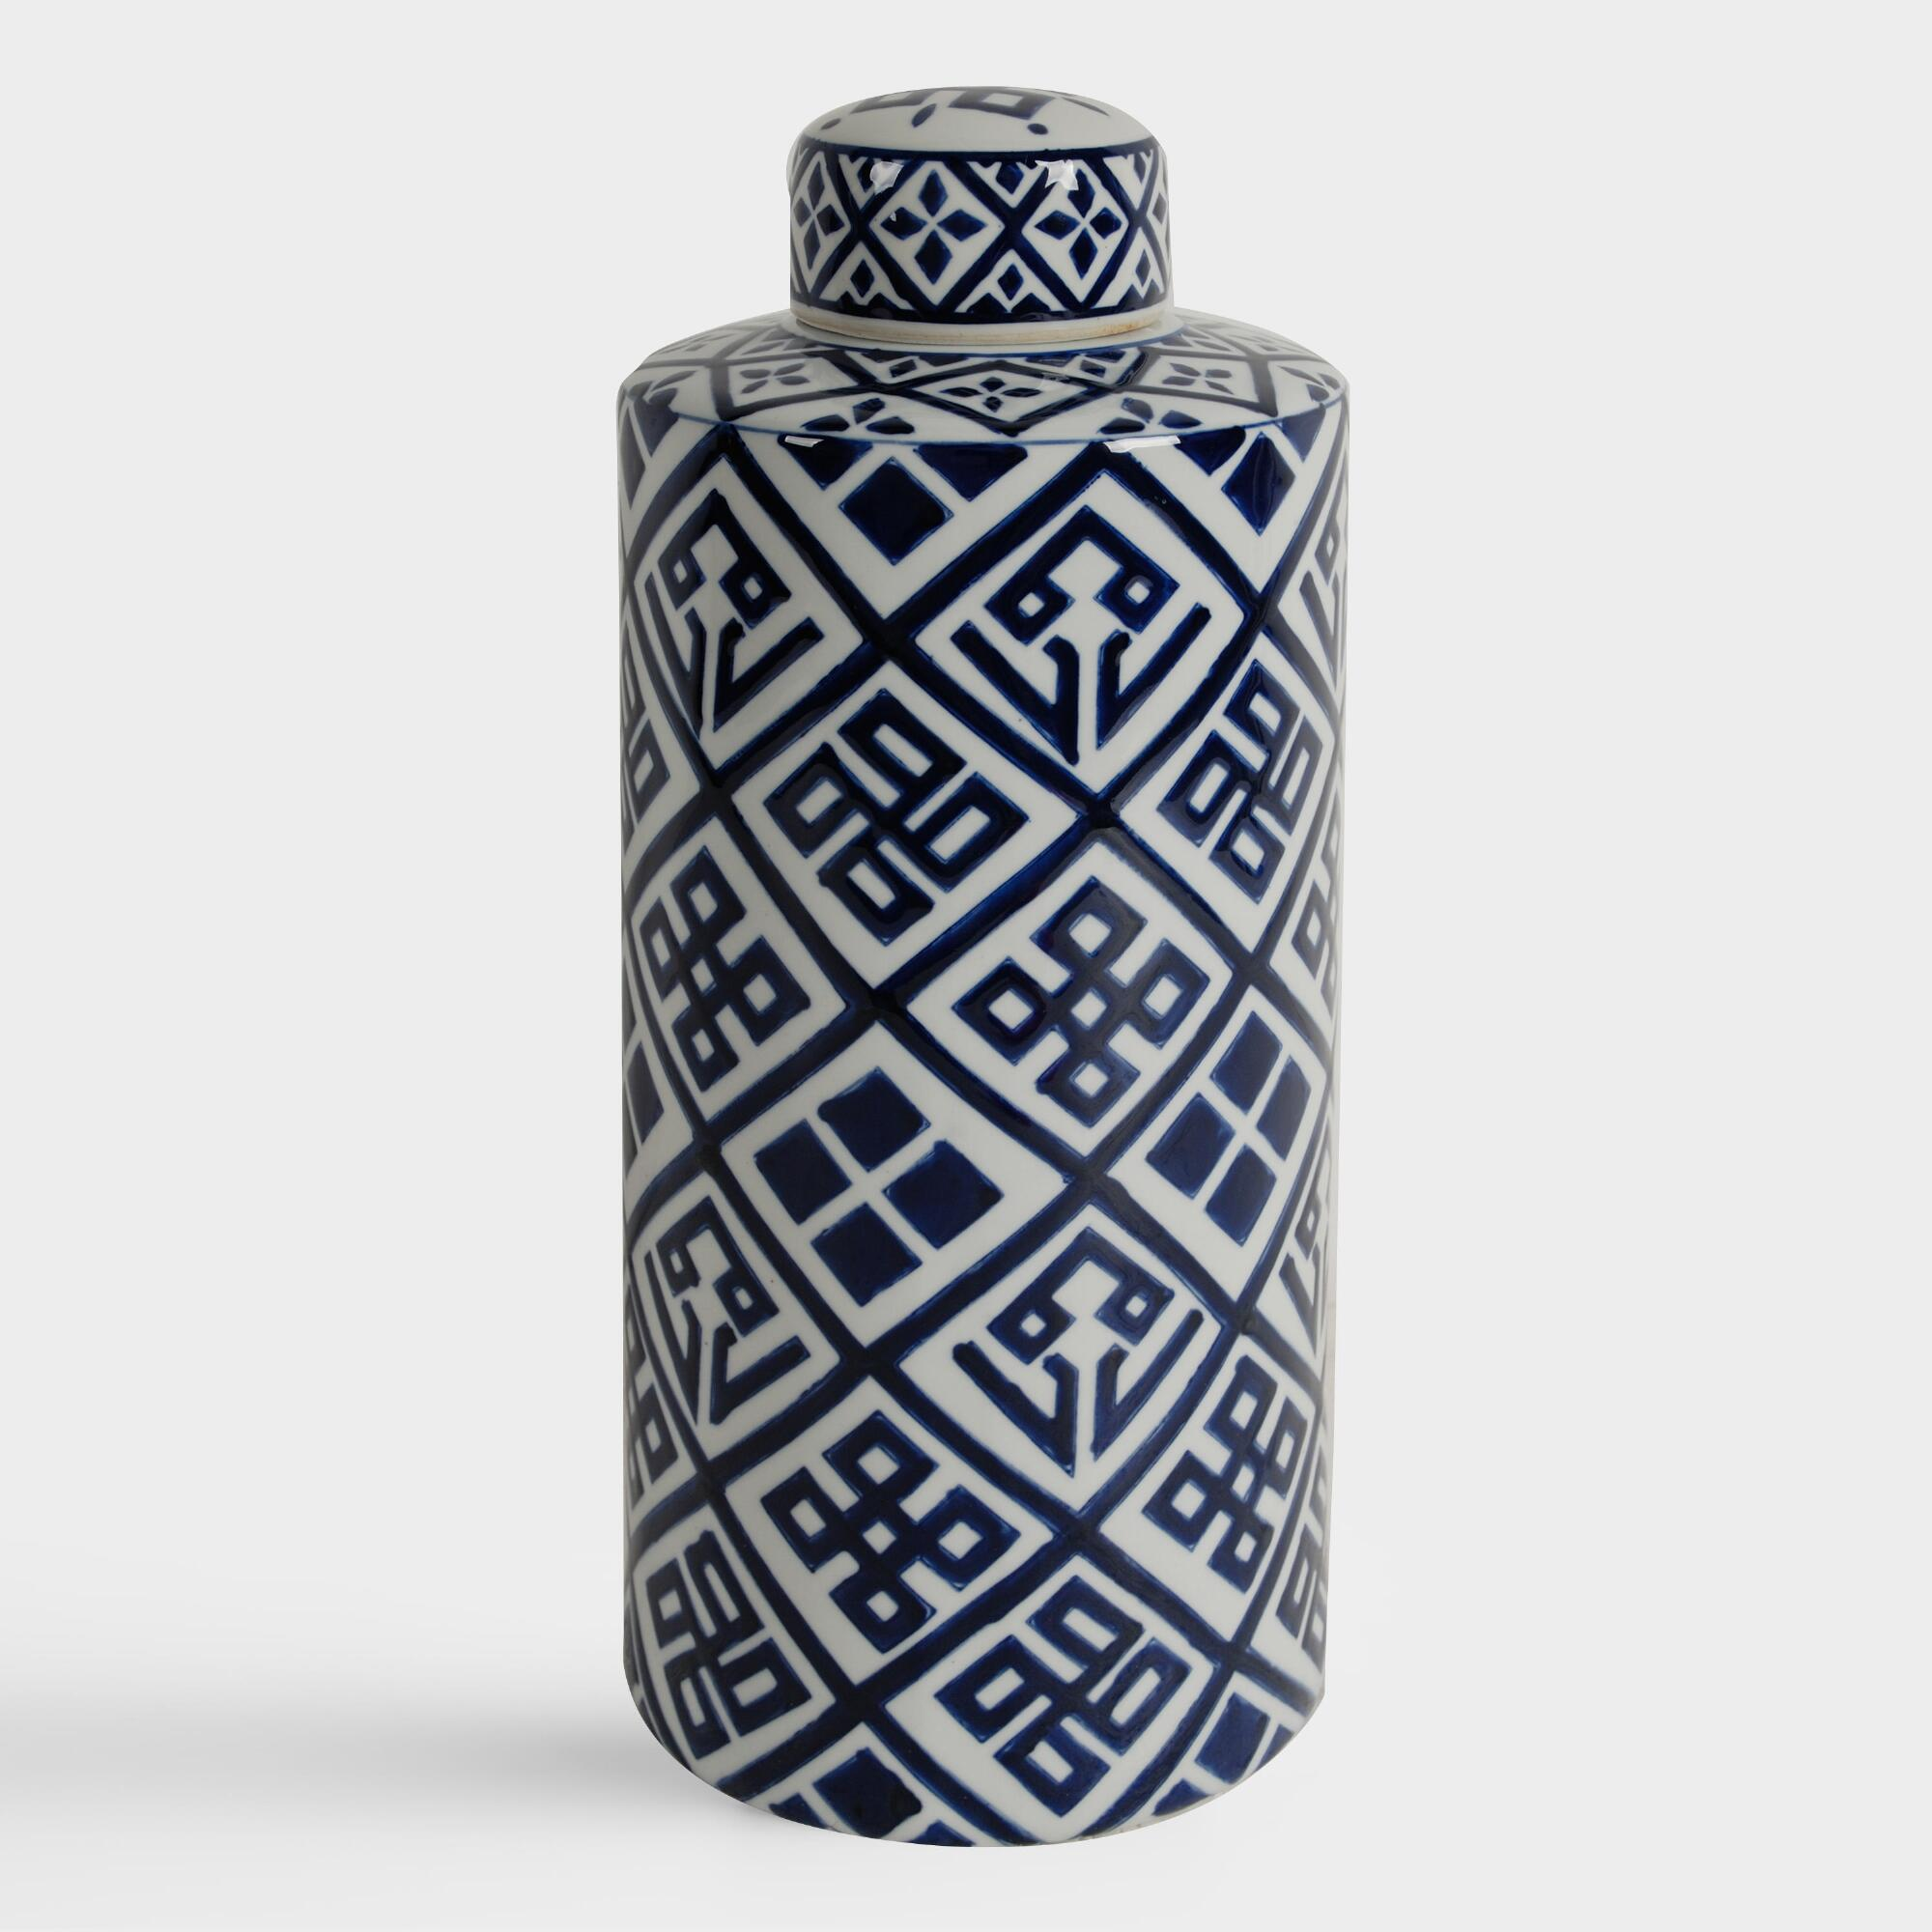 Blue and White Ceramic Cylinder Jars - Small by World Market Small